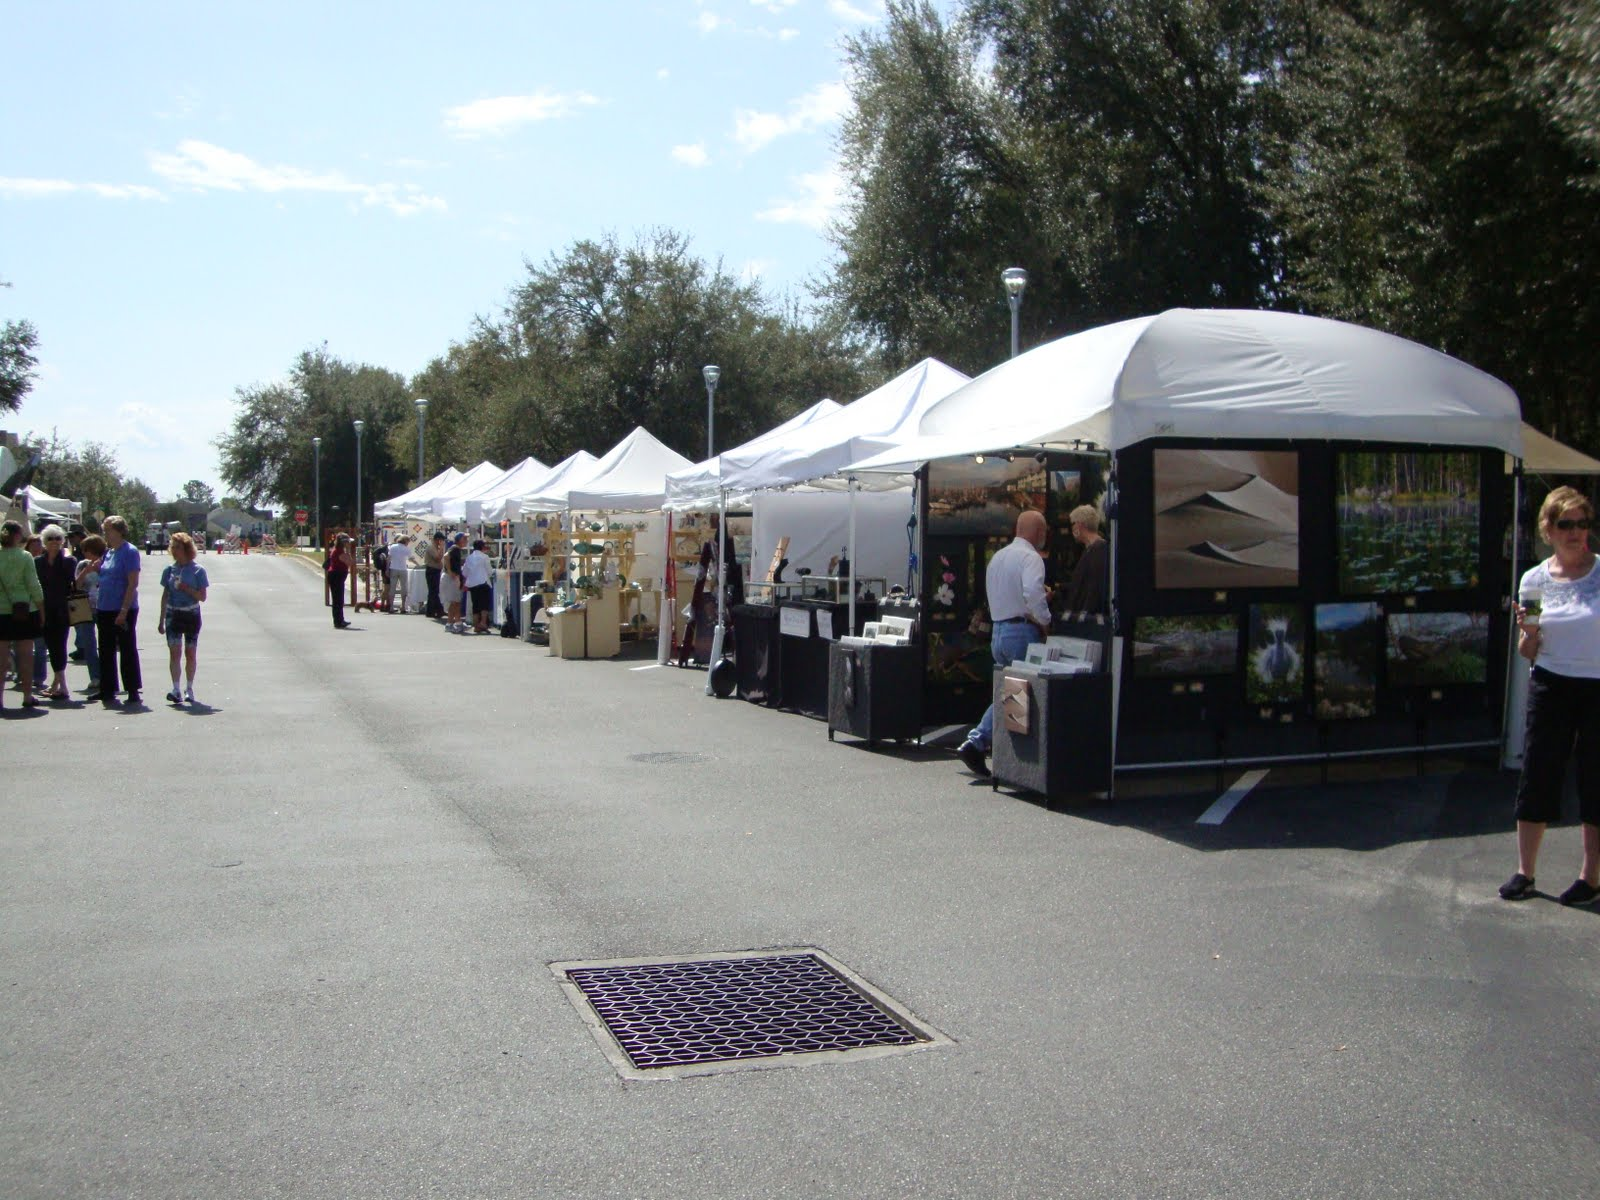 The tents are set up in the street in this so called u0027townu0027 which reminds you of Louisiana and plantations. The houses are so cool looking with large ... & Robbieu0027s Paw Prints: Tioga Winter Art Fair